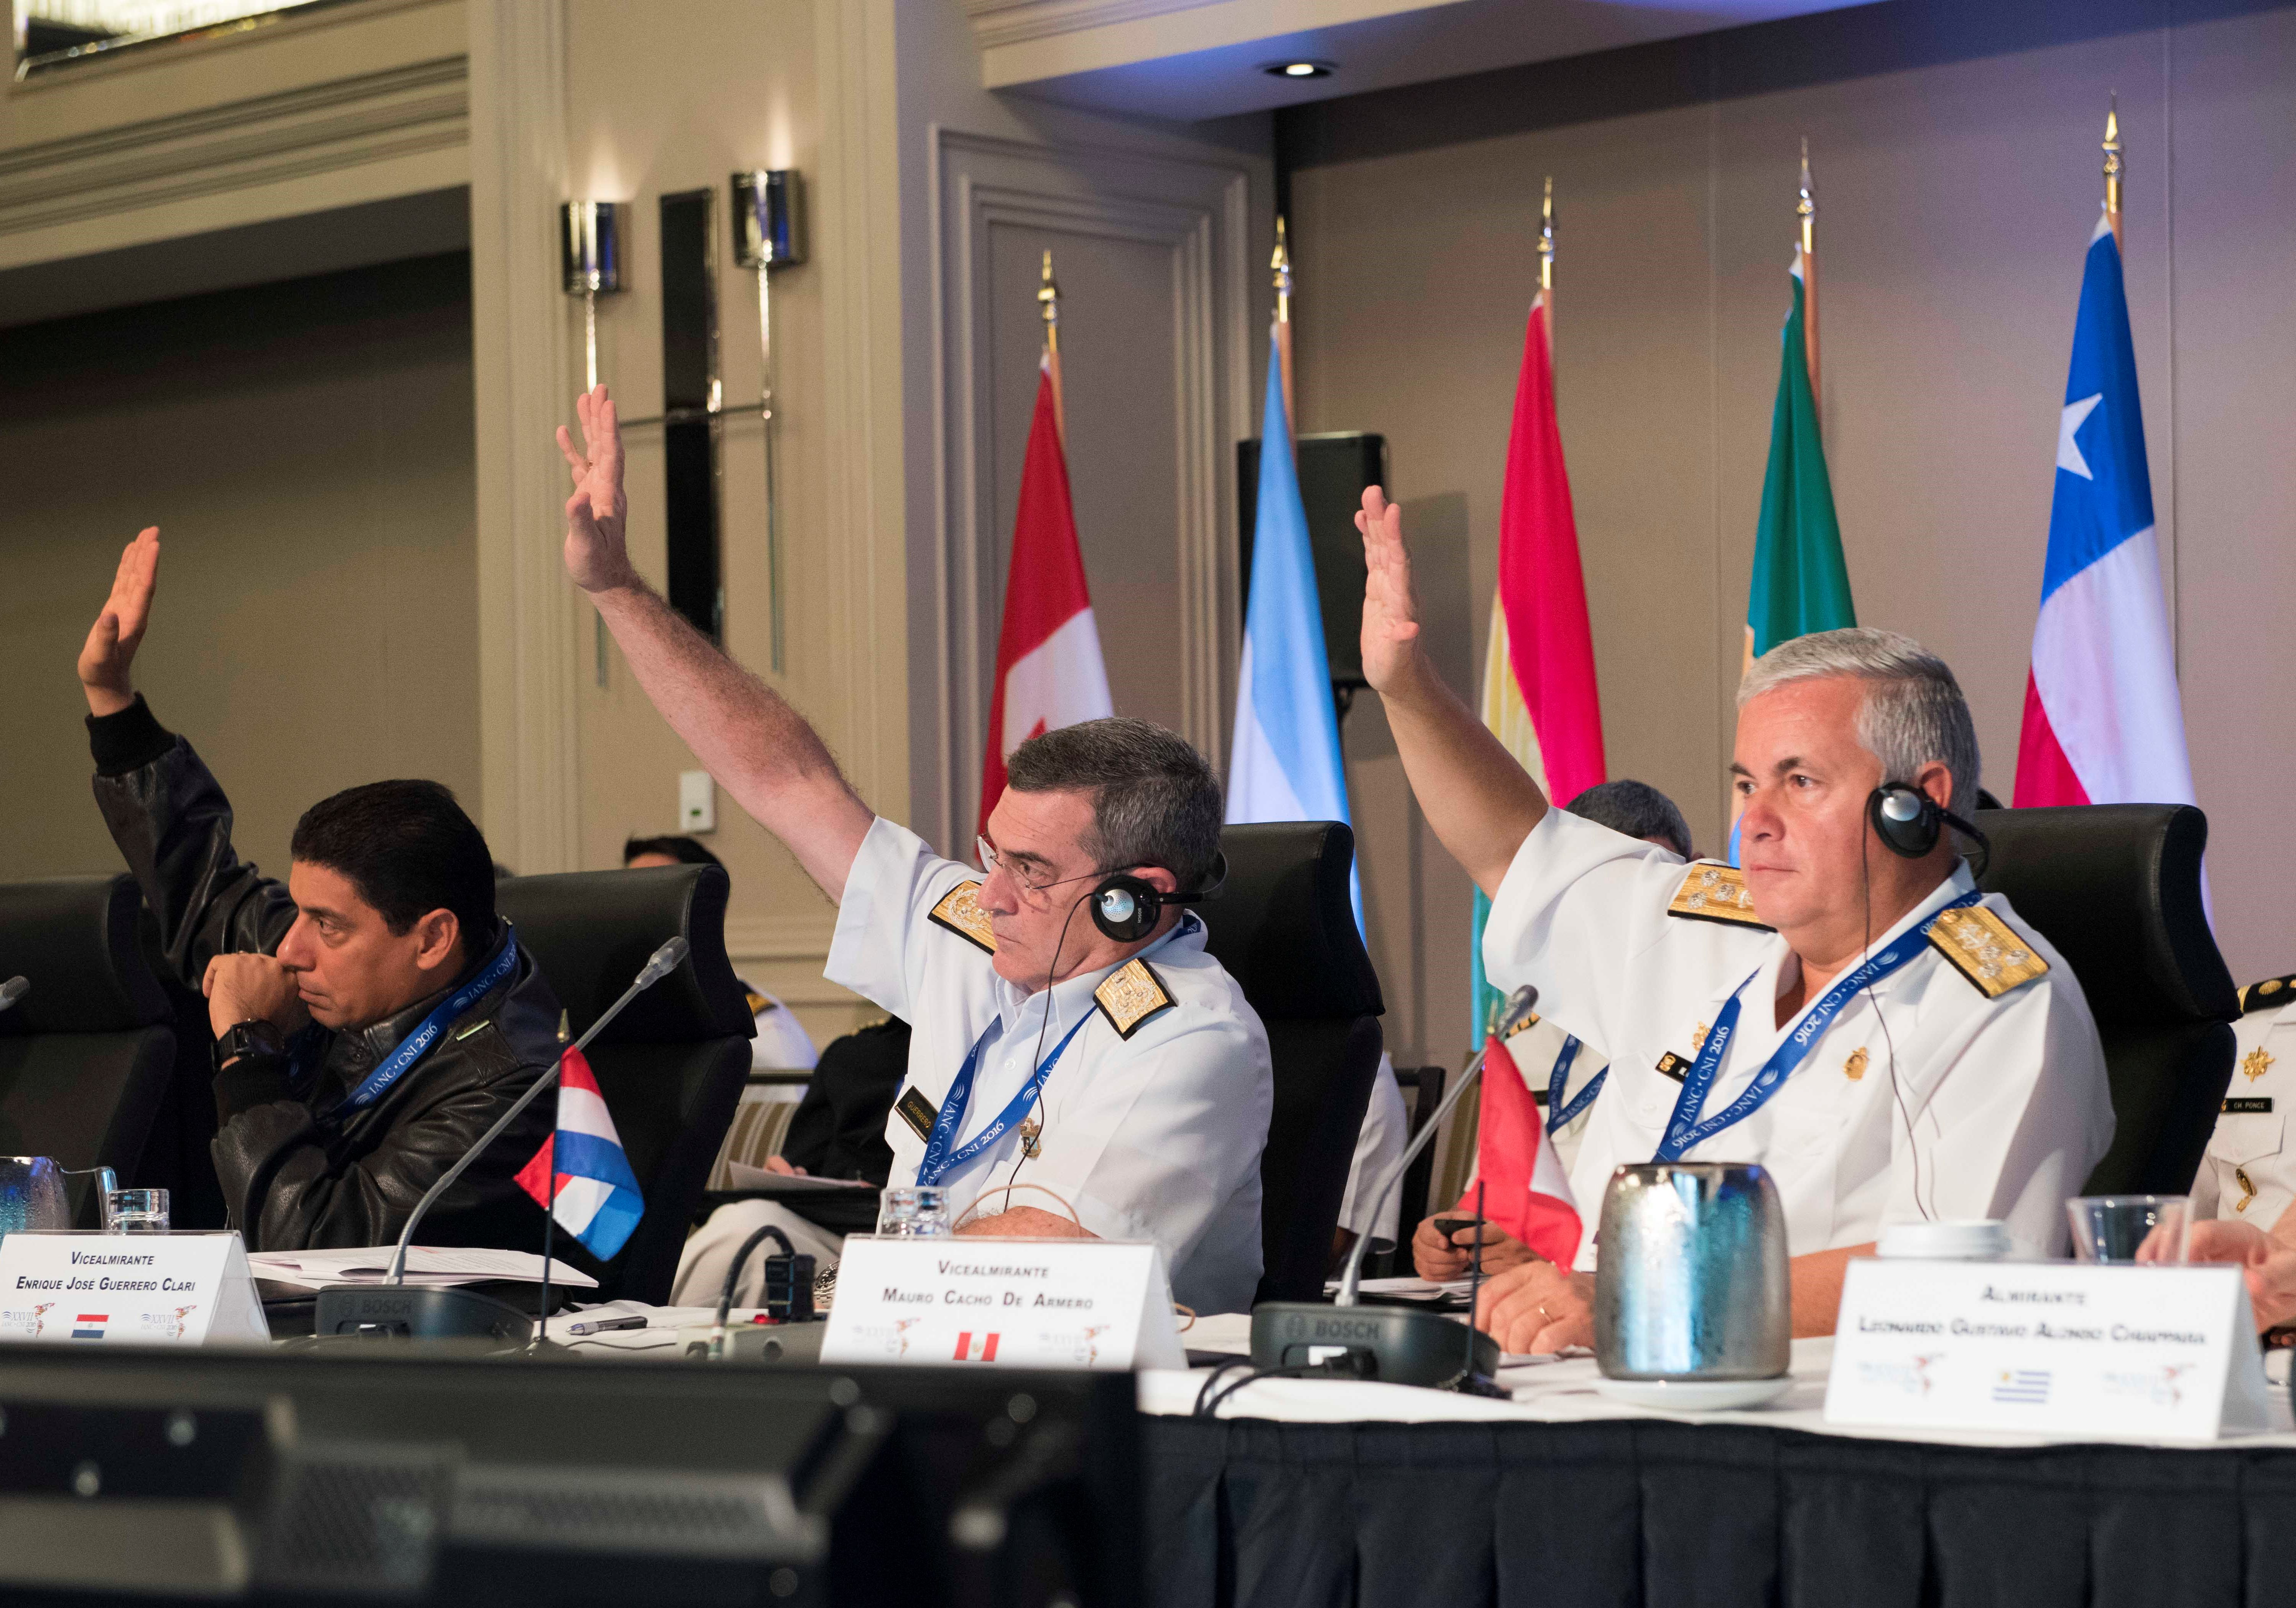 Delegates vote on proposals at the Inter-American Naval Conference in Halifax on June 15, 2016.